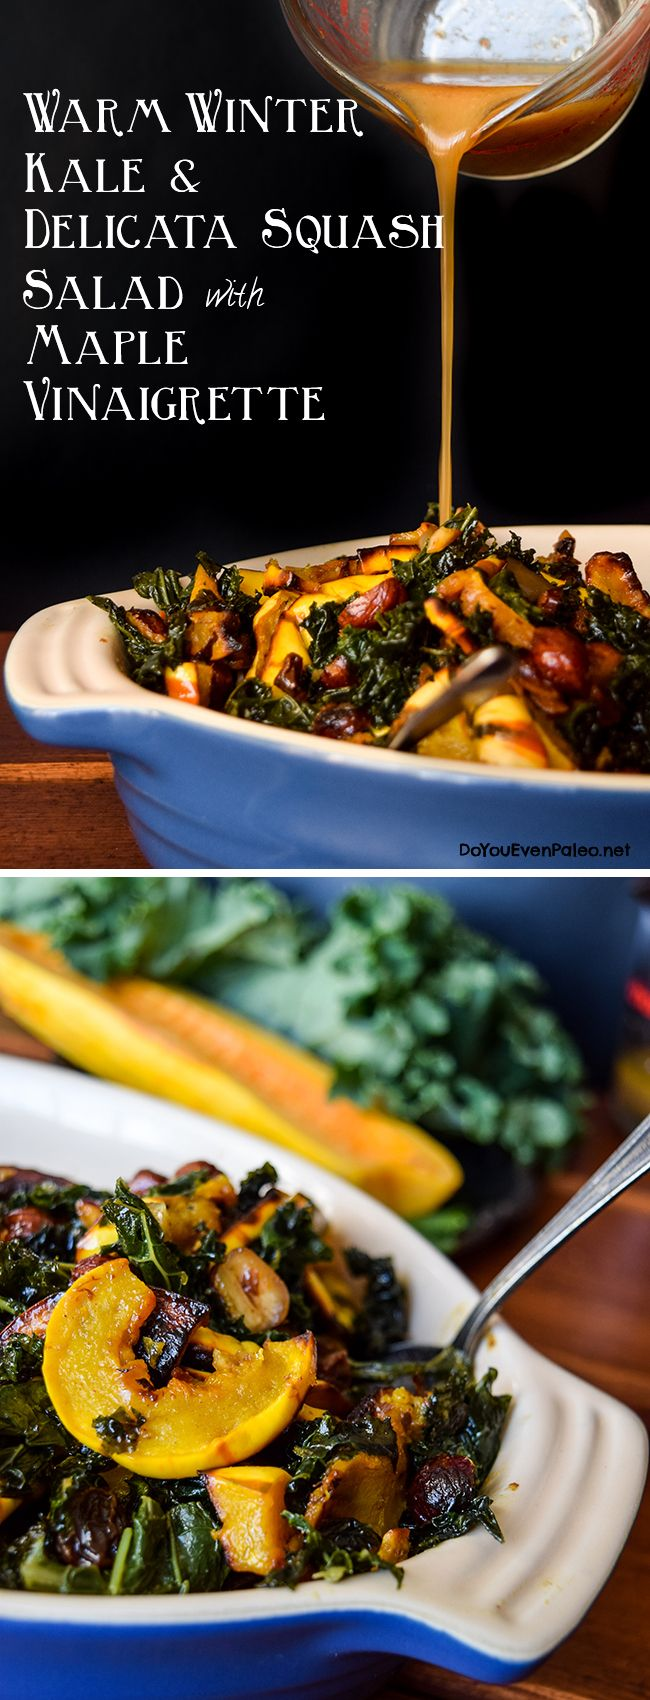 226 best images about Paleo Holiday Menu on Pinterest | Lamb ...